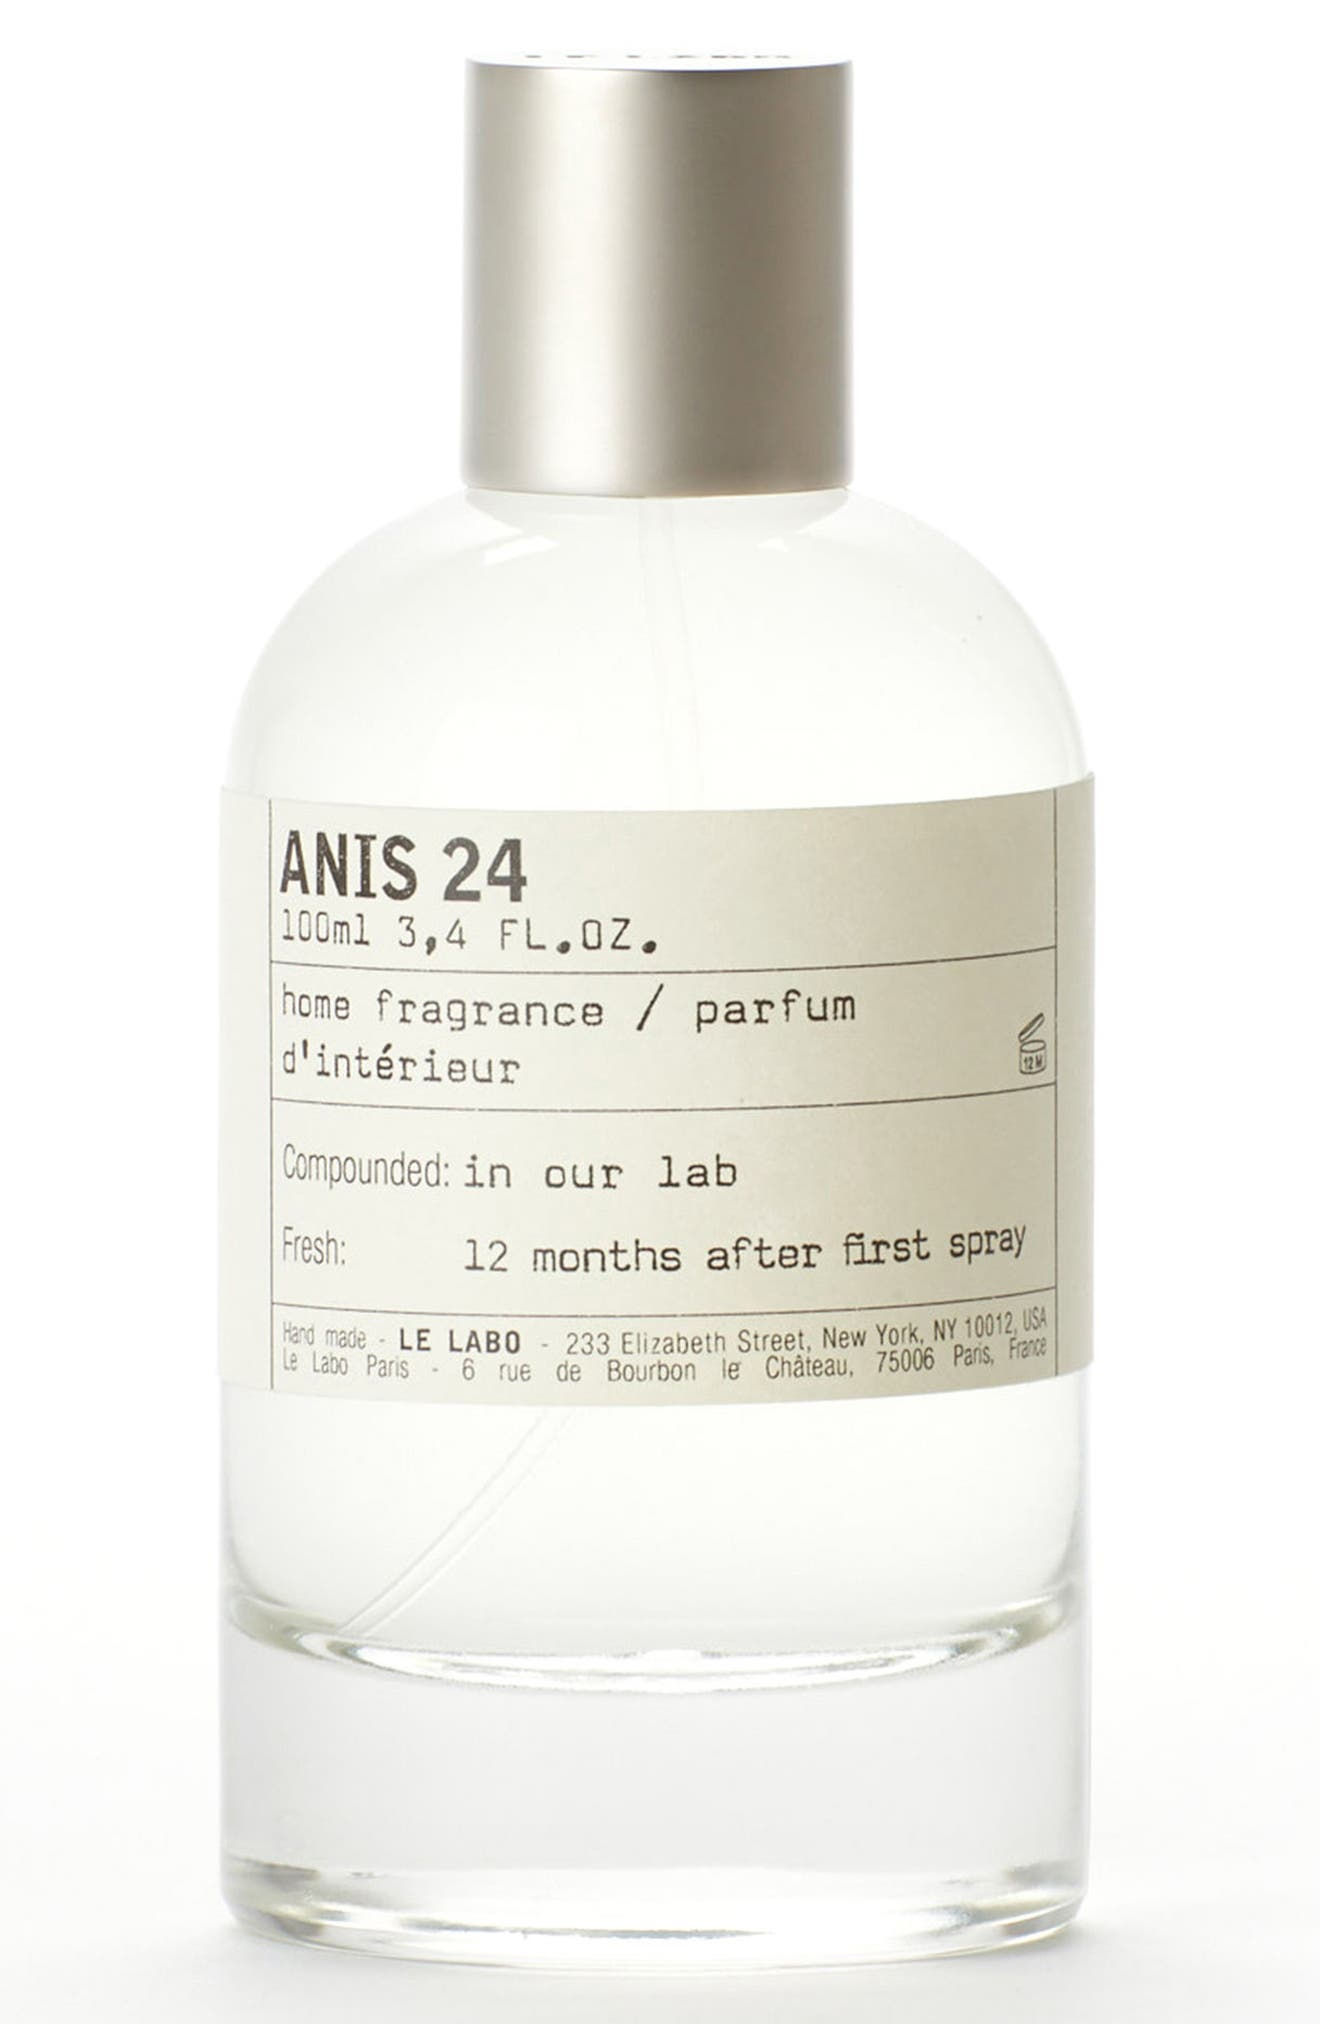 'Anis 24' Home Fragrance Spray,                             Main thumbnail 1, color,                             No Color